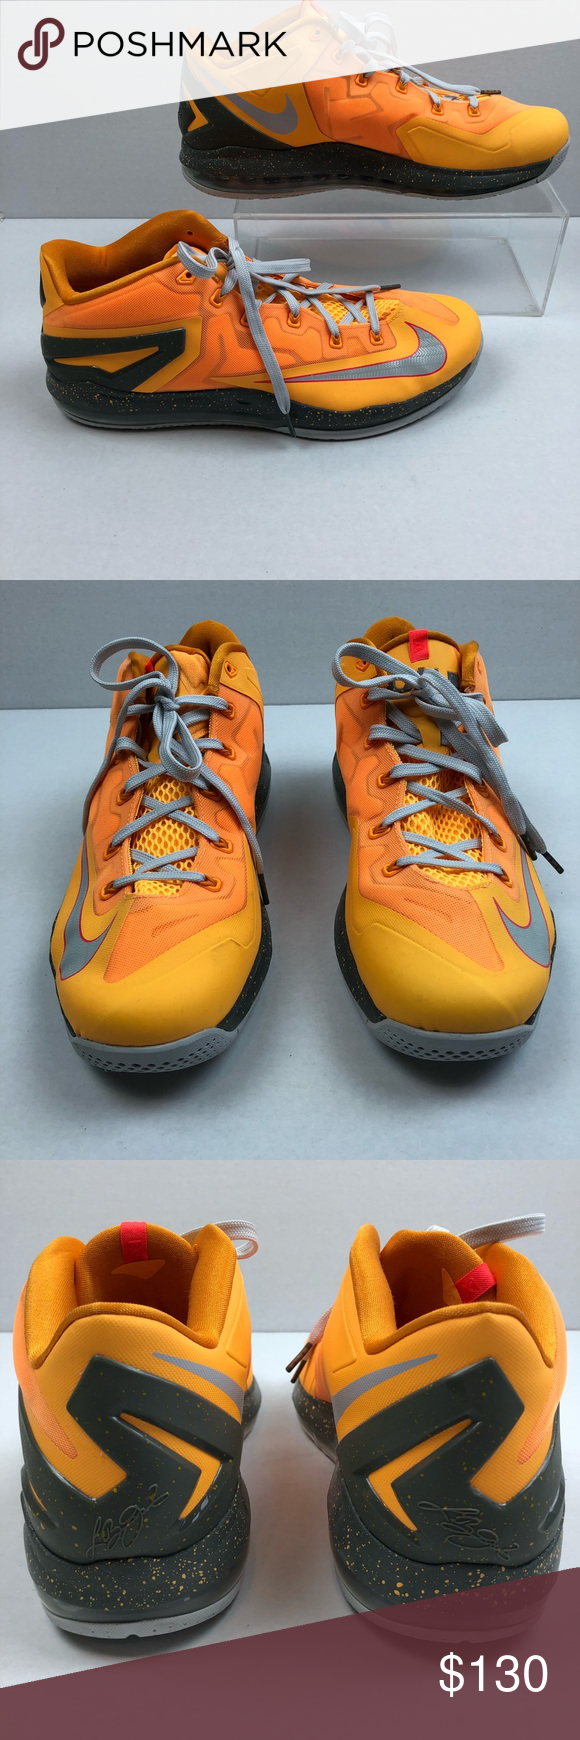 best service 4f185 8e9c8 Nike Max Lebron Floridian 11 Low XI 13 Orange Gray Nike Max Lebron 11 XI Low